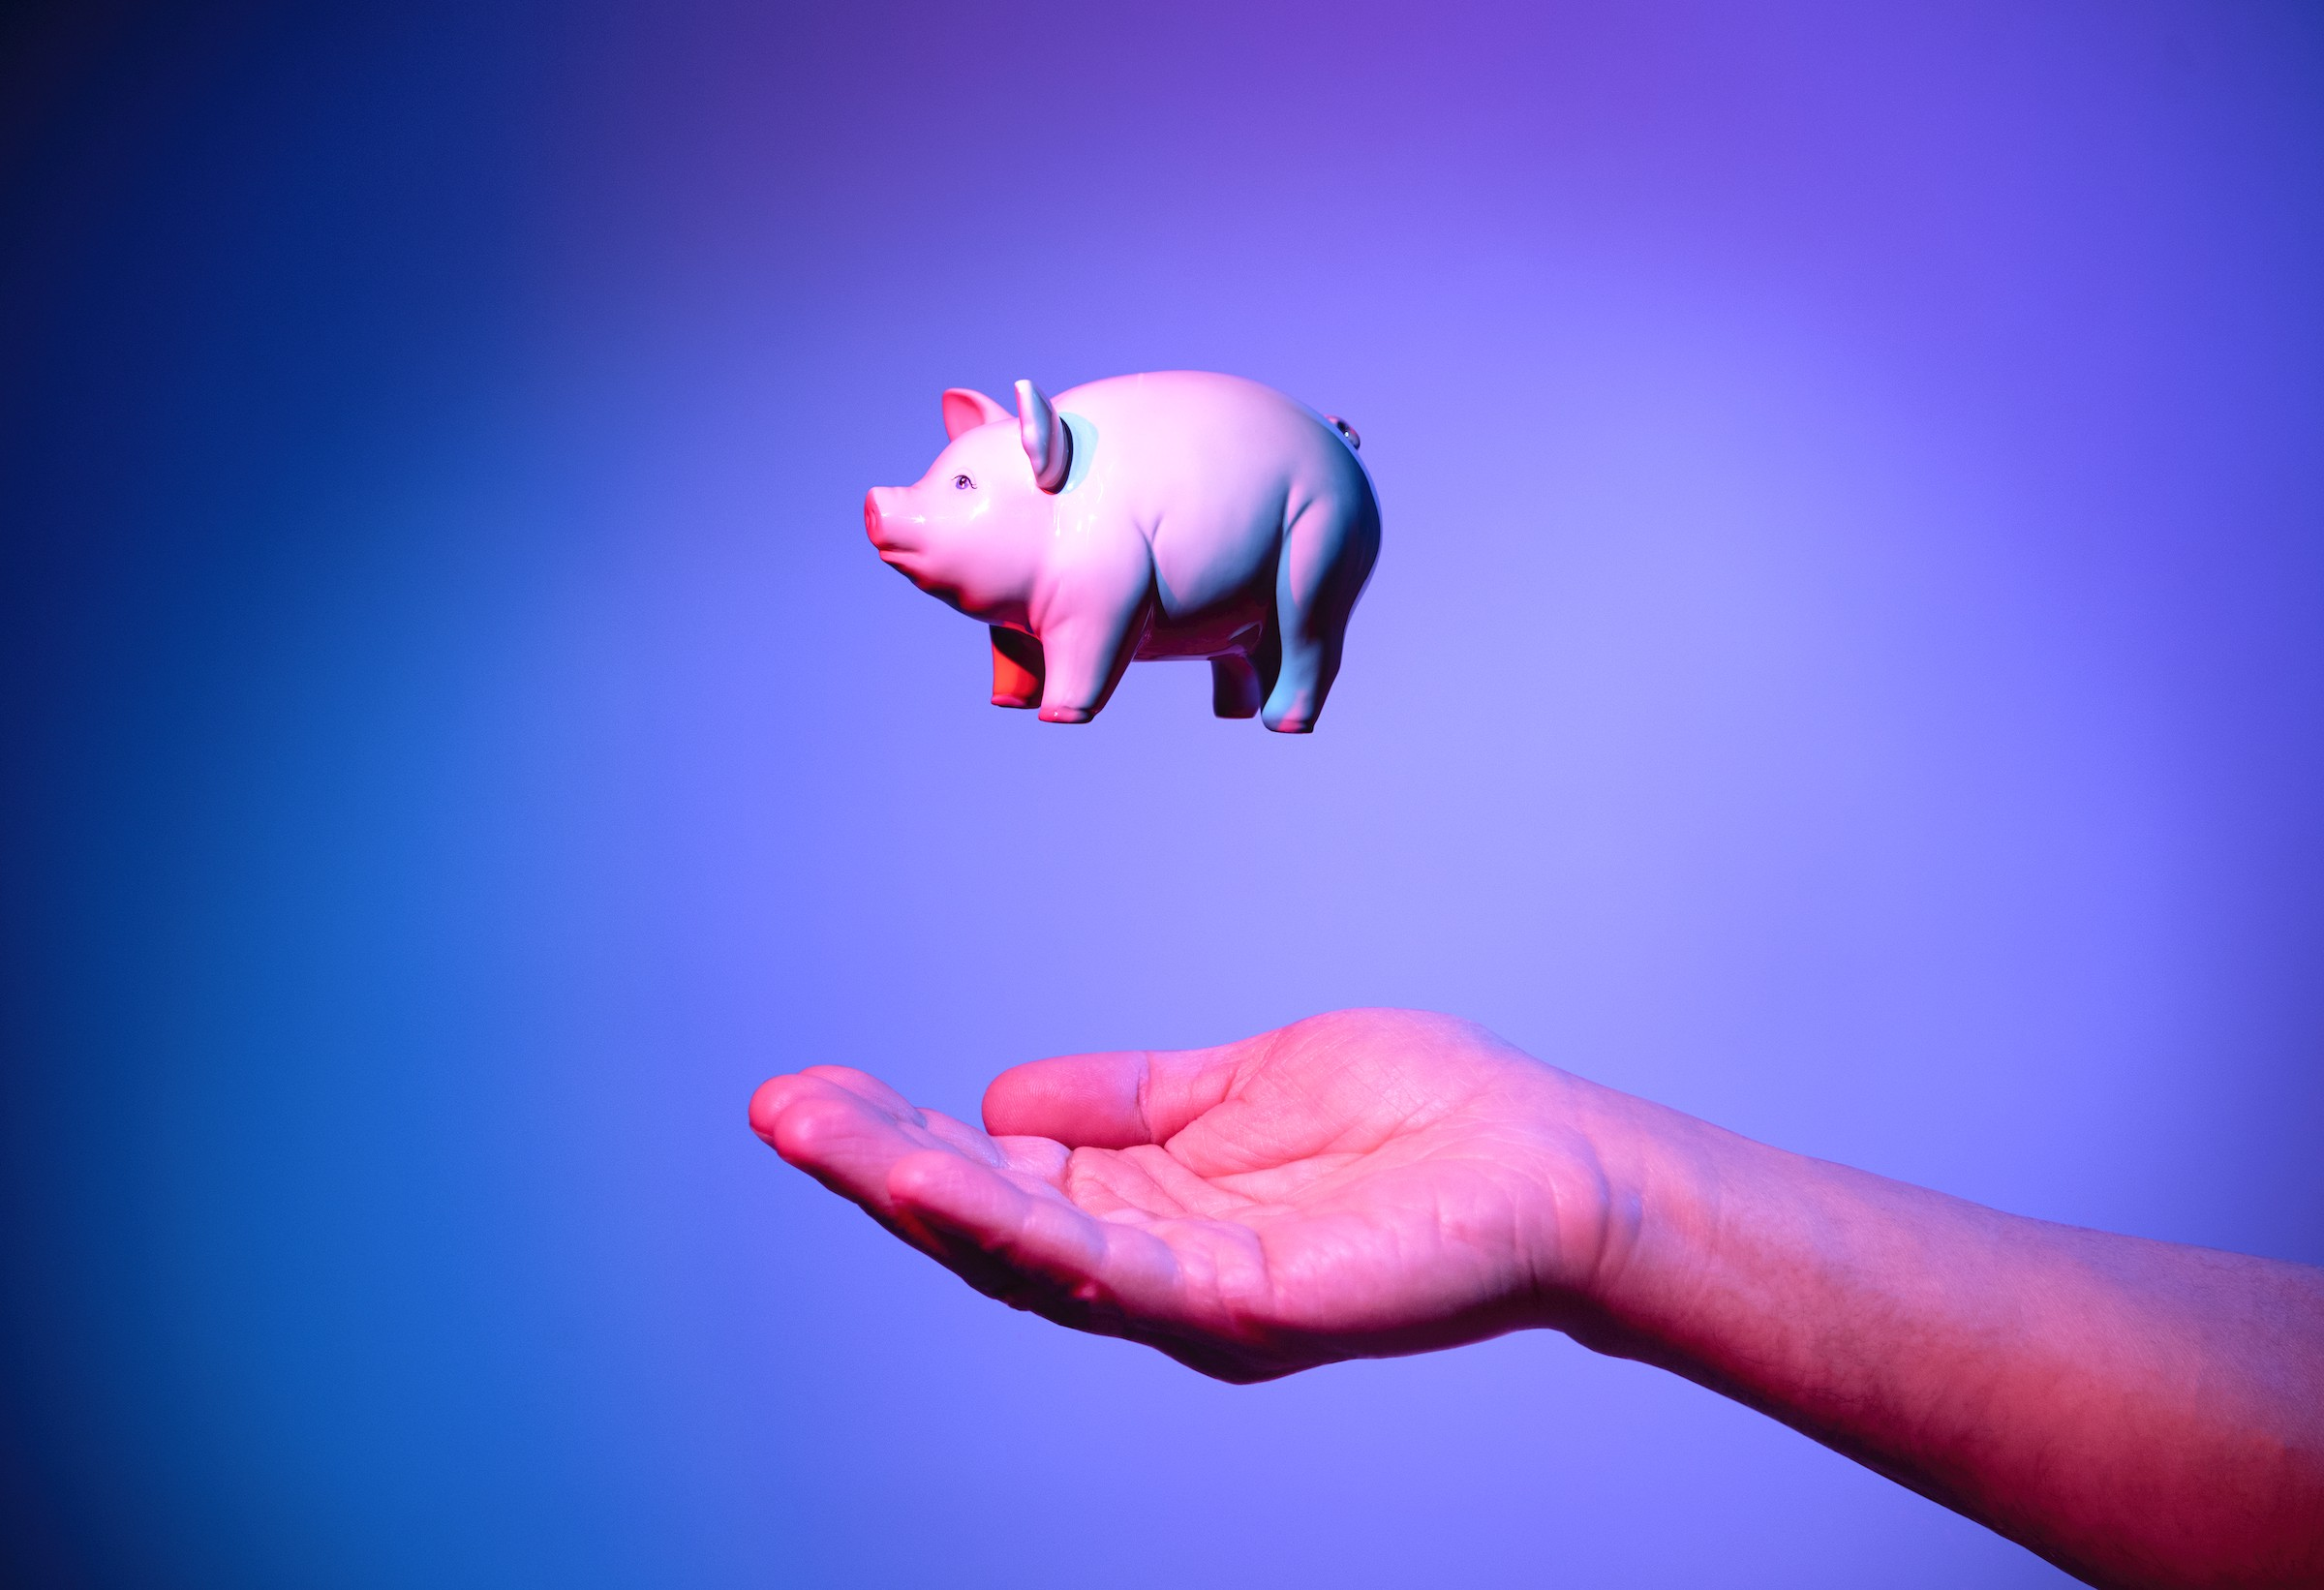 A pink piggy bank in mid-air above someone's hand.